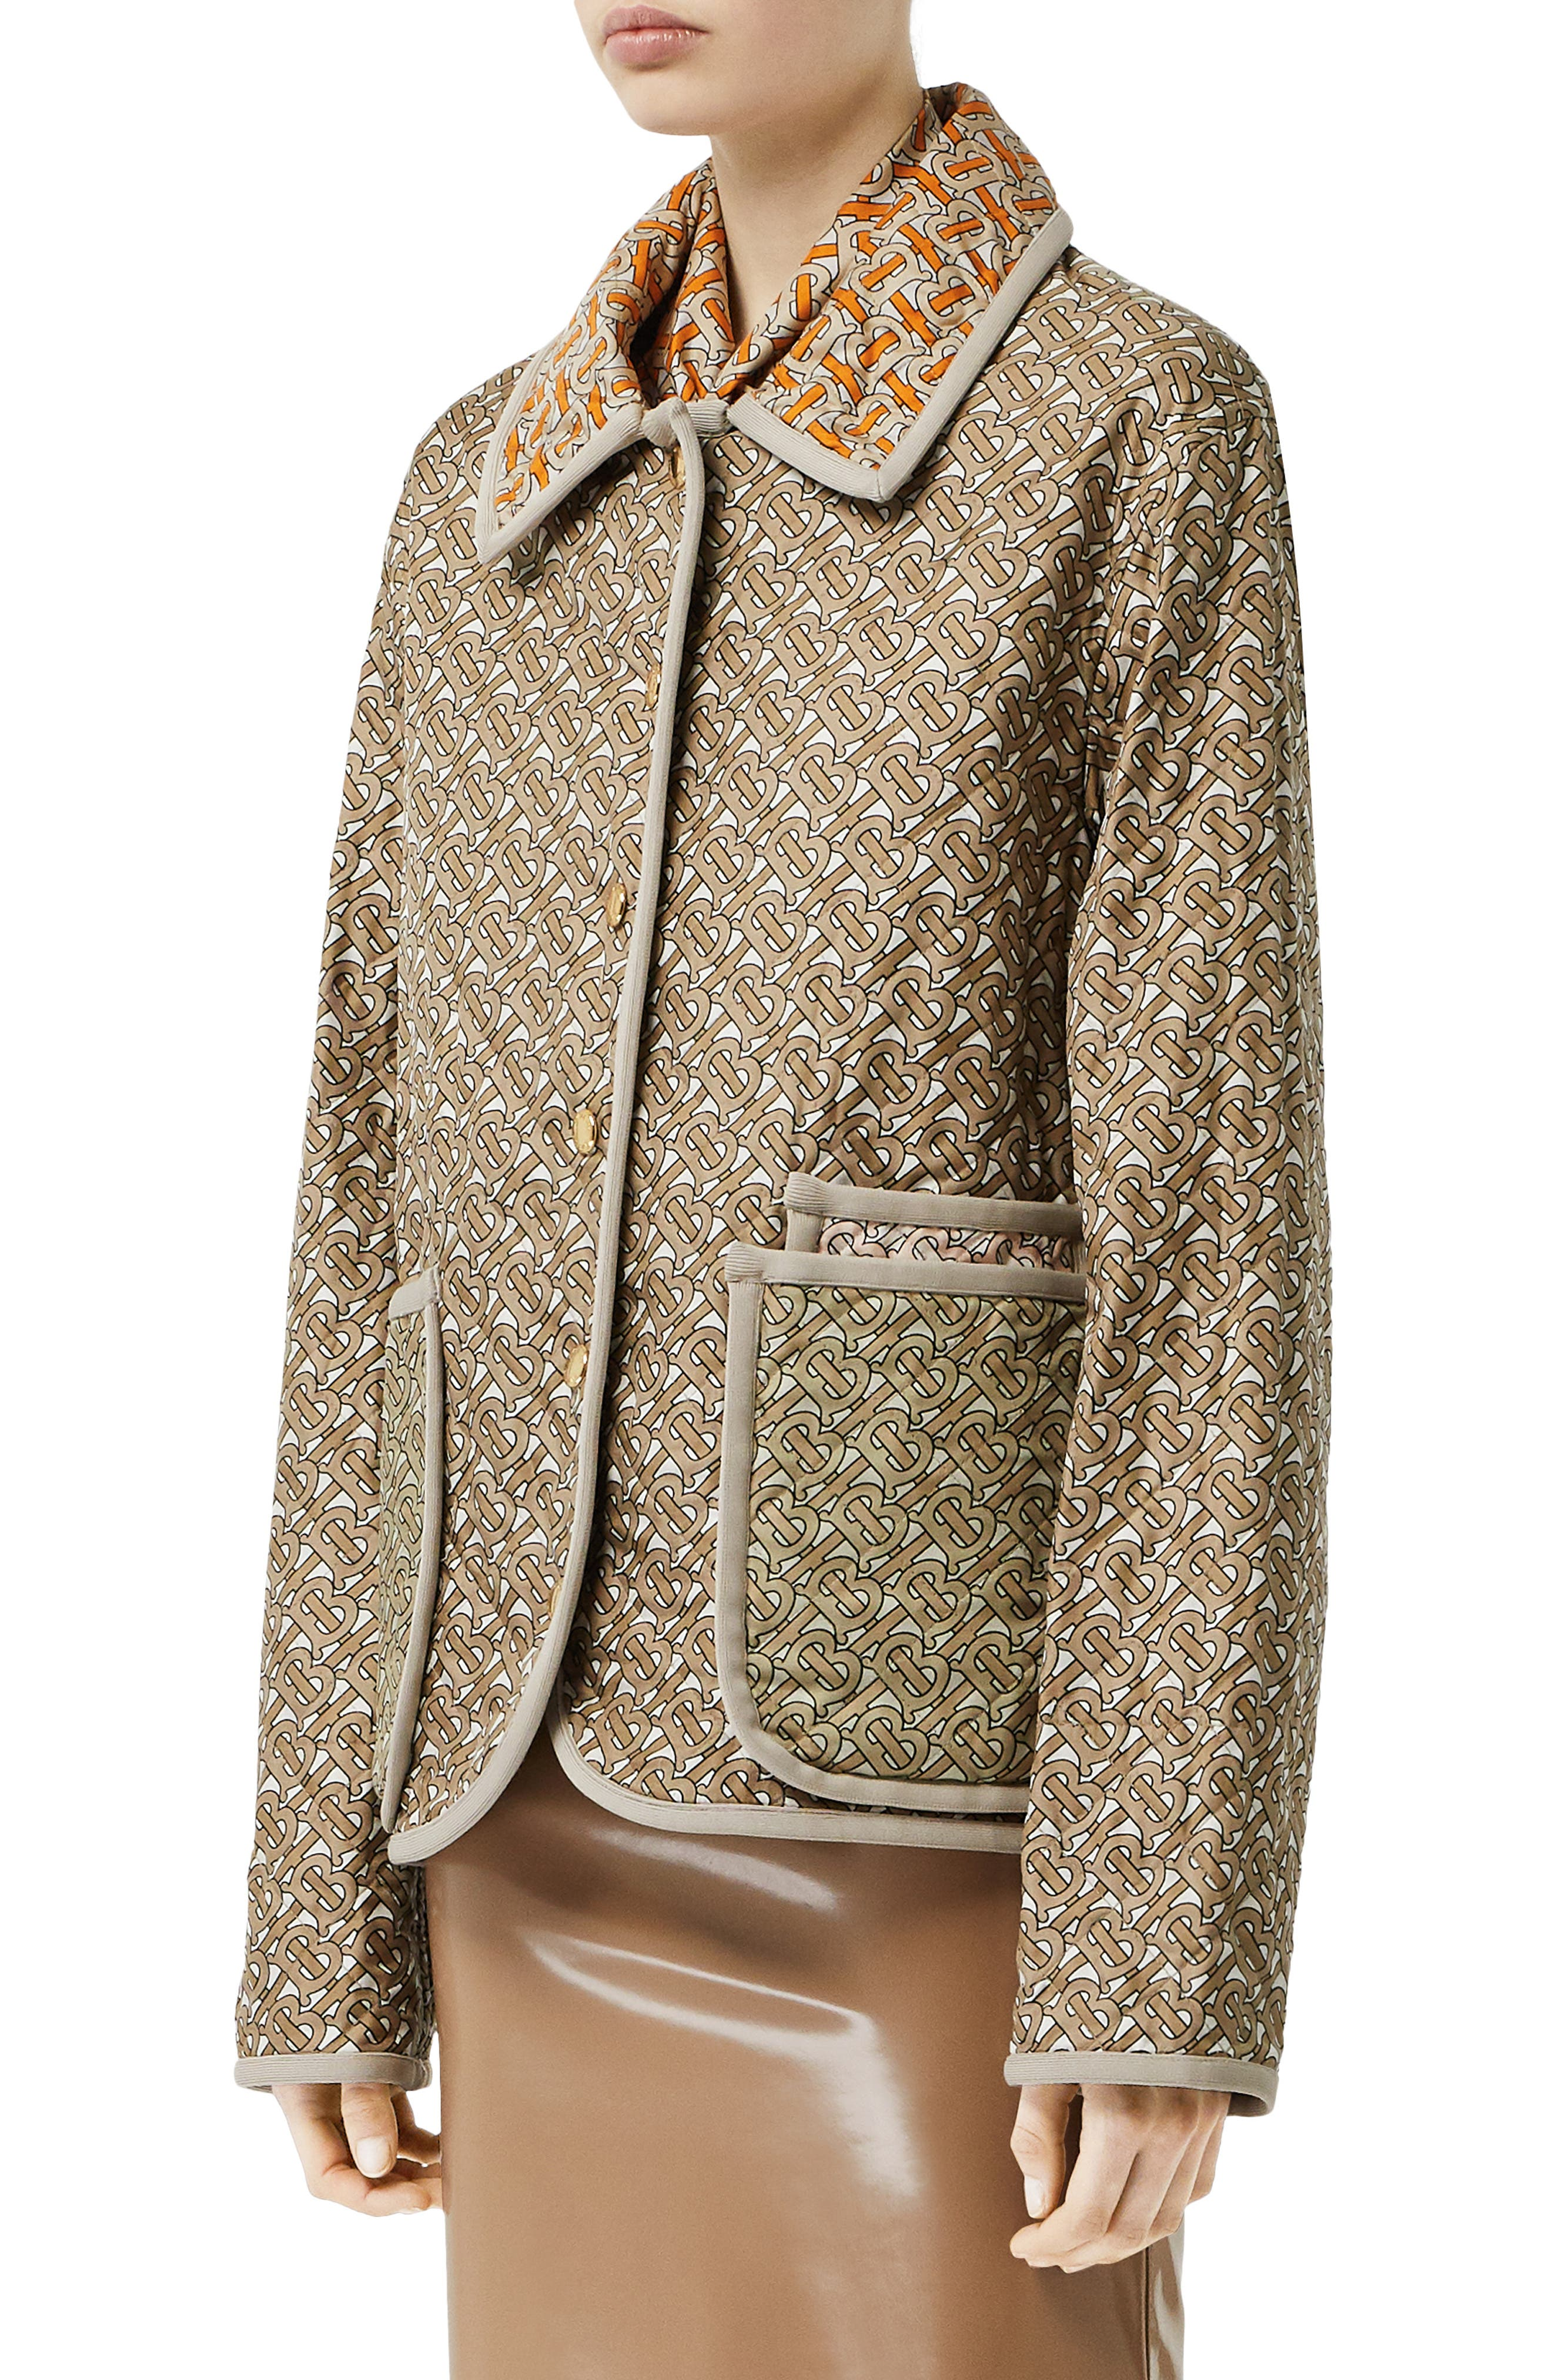 BURBERRY, Monogram Logo Print Quilted Silk Jacket, Alternate thumbnail 3, color, ARCHIVE BEIGE